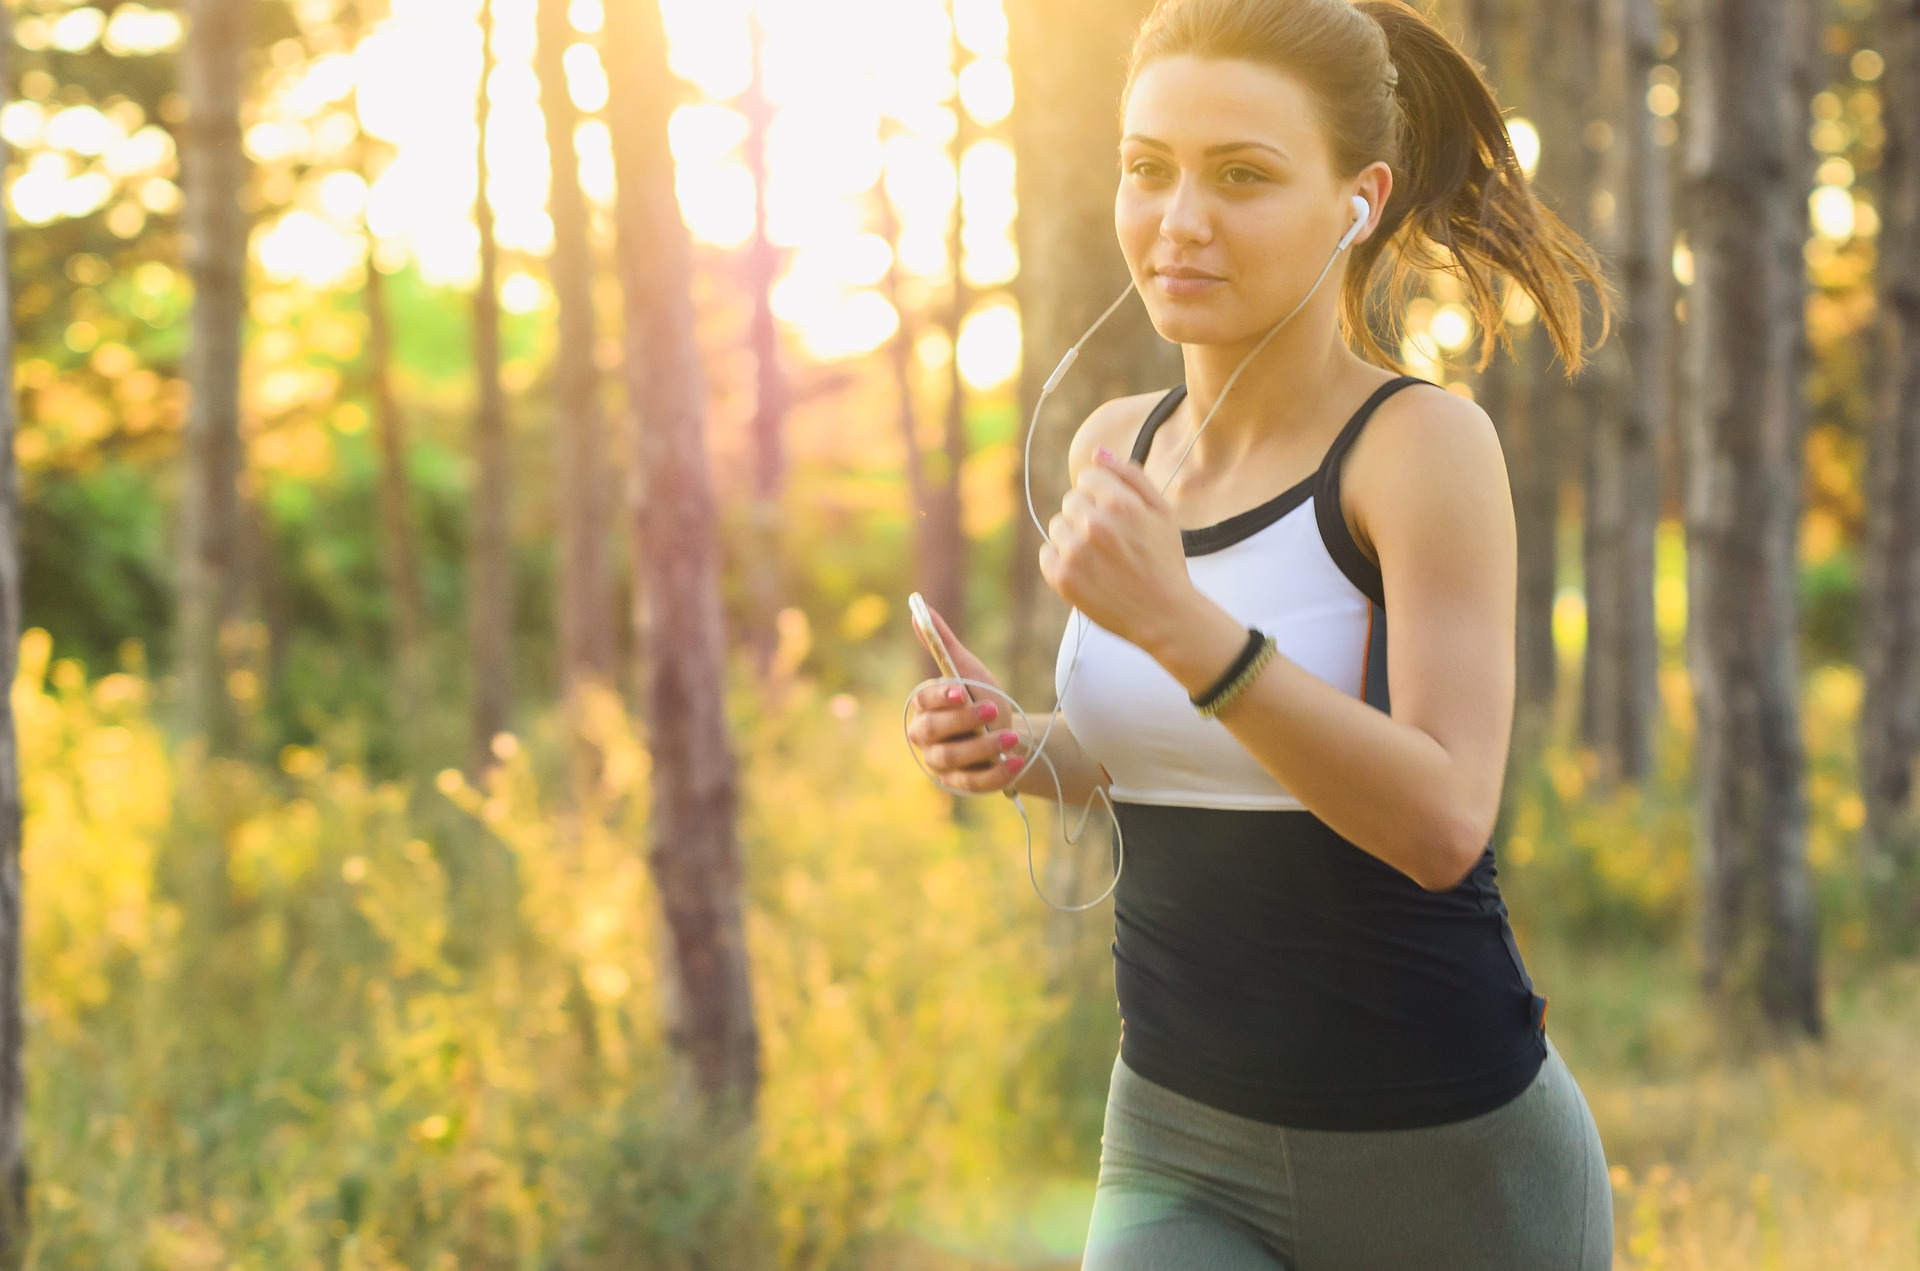 The Holistic Runner's Guide: How To Lose Weight and Increase Energy Naturally // Long Run Living